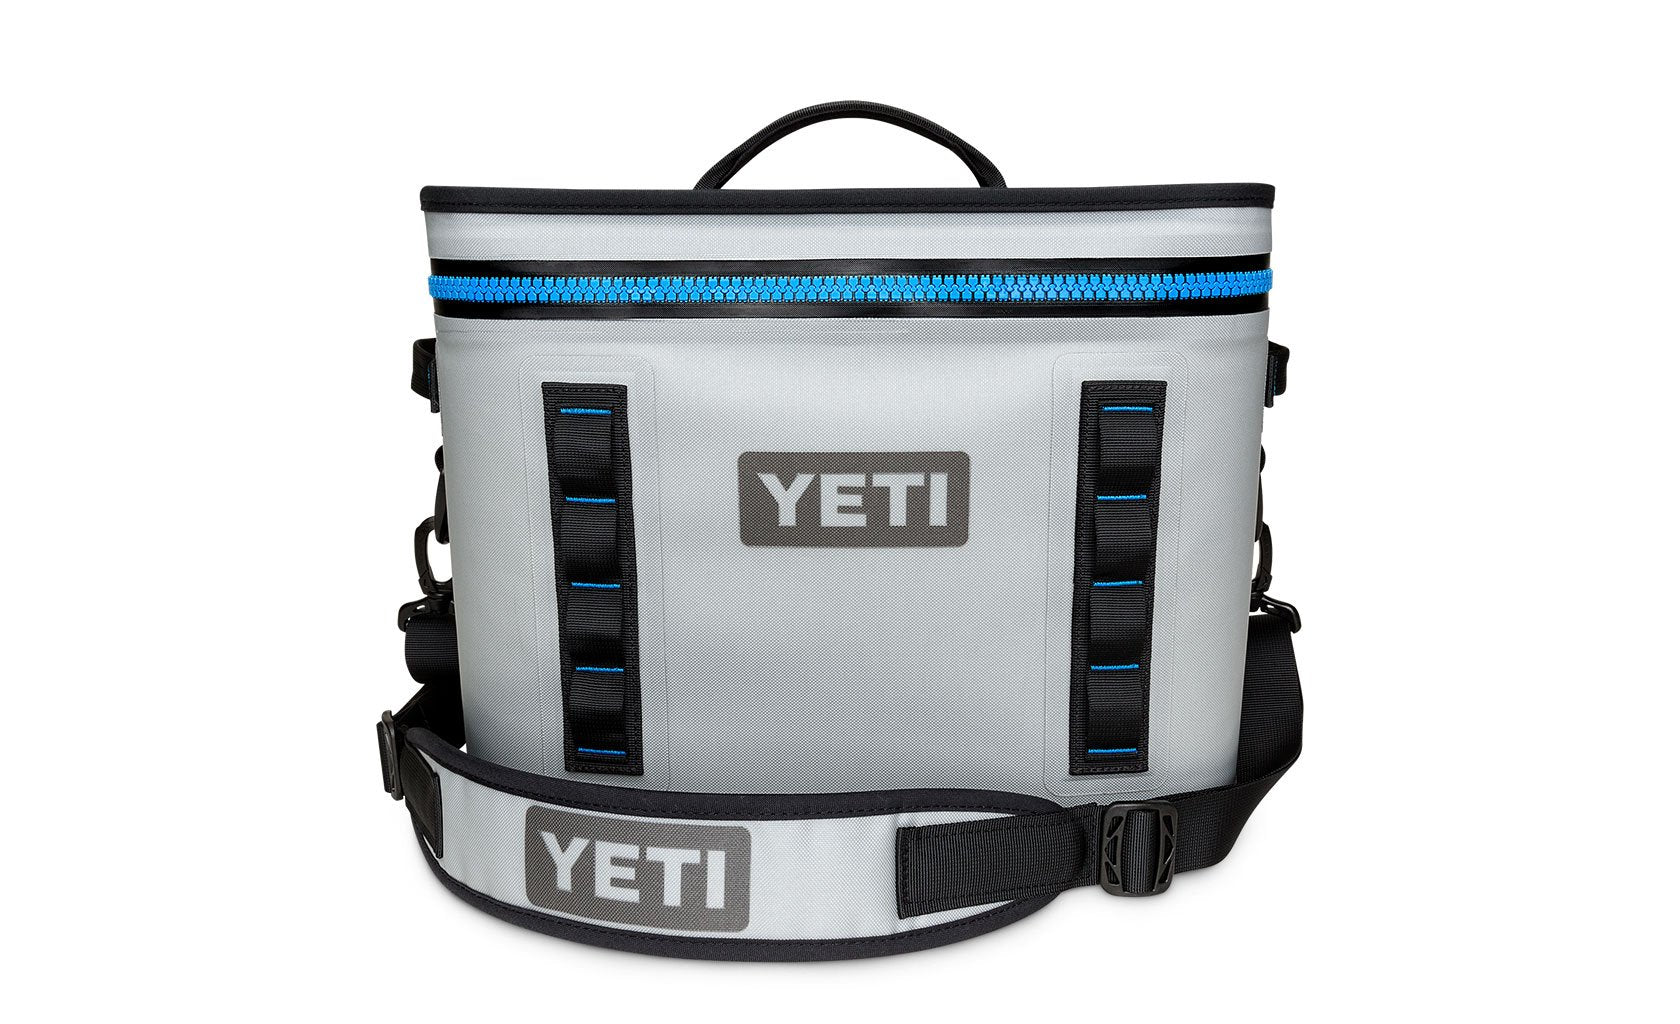 Yeti Hopper Flip 18 Fog Gray / Tahoe Blue (Top Handle) - Board Store YetiSoft Cooler